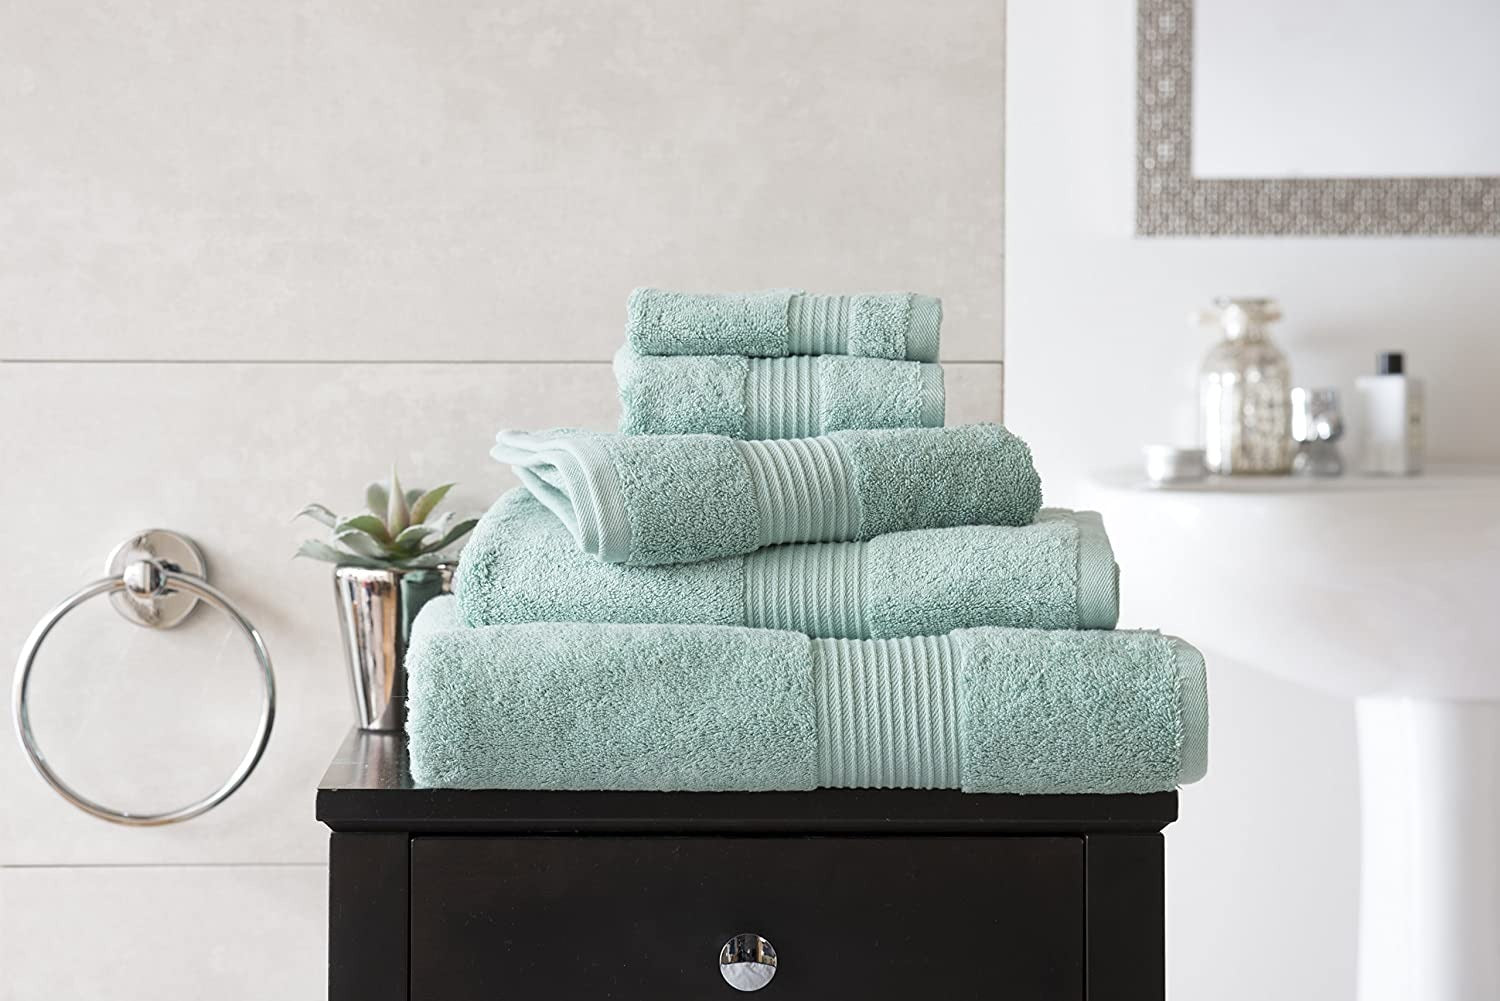 Deyongs Bliss 650gsm Pima Cotton Towels - Spearmint